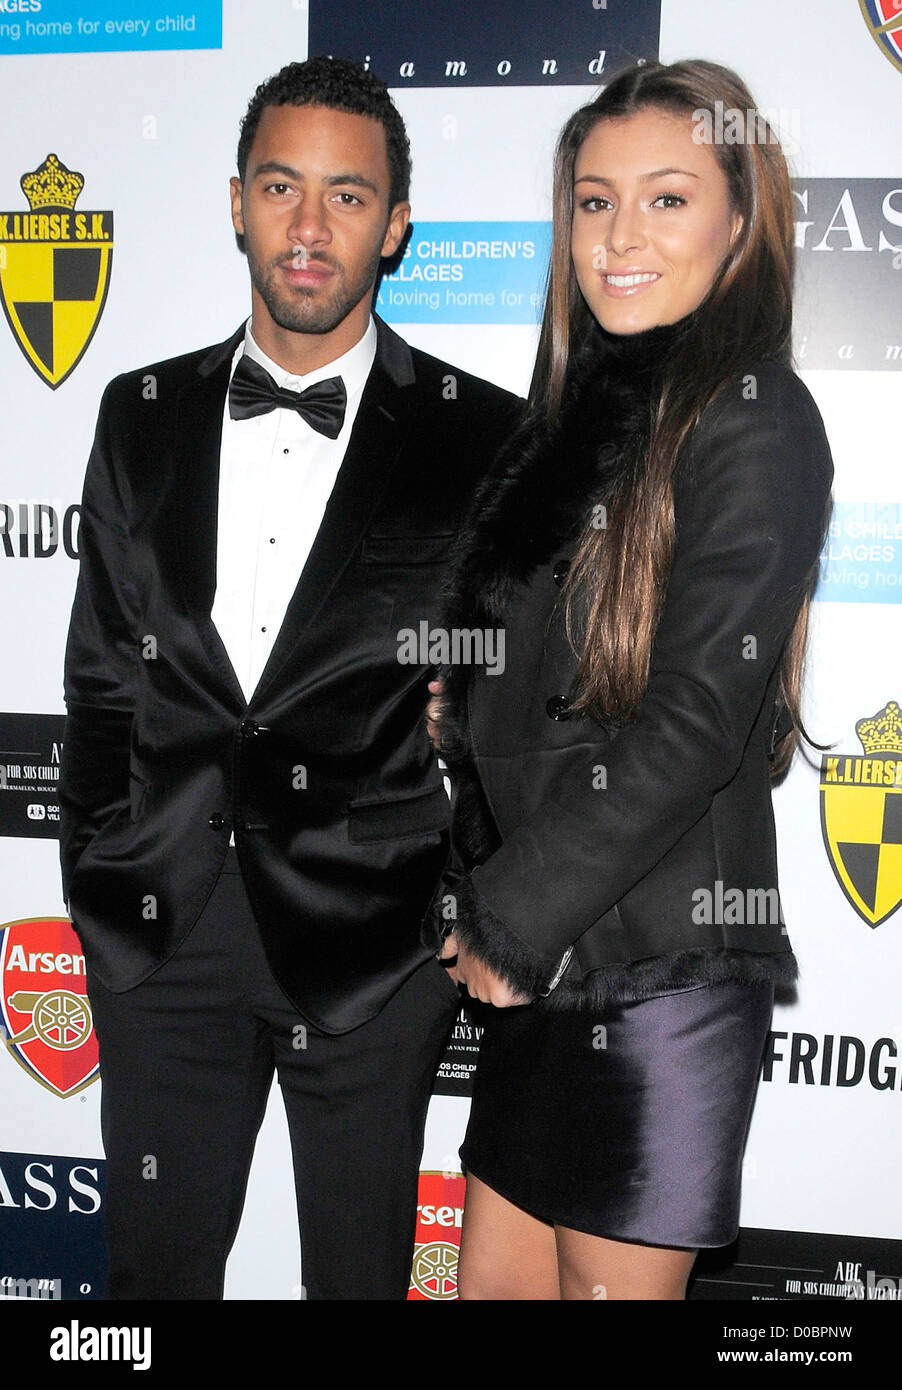 Fulham striker Mousa Dembele and girlfriend arriving at ABC for SOS Ball London, England - 05.12.10 Stuart - Stock Image